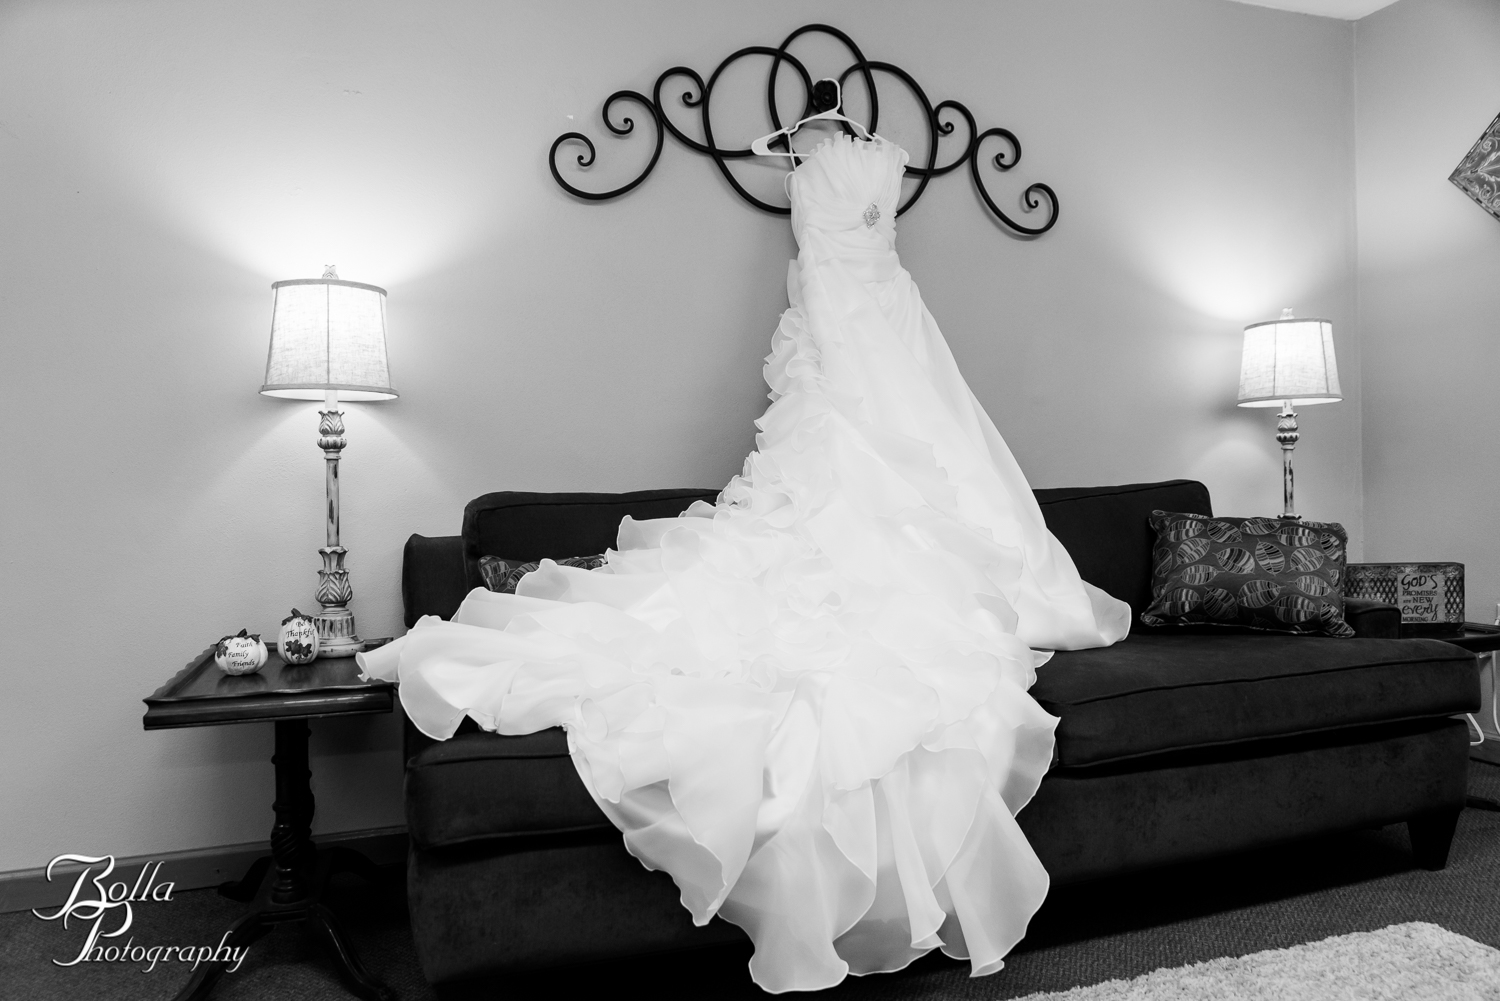 Bolla_Photography_St_Louis_wedding_photographer-0035.jpg